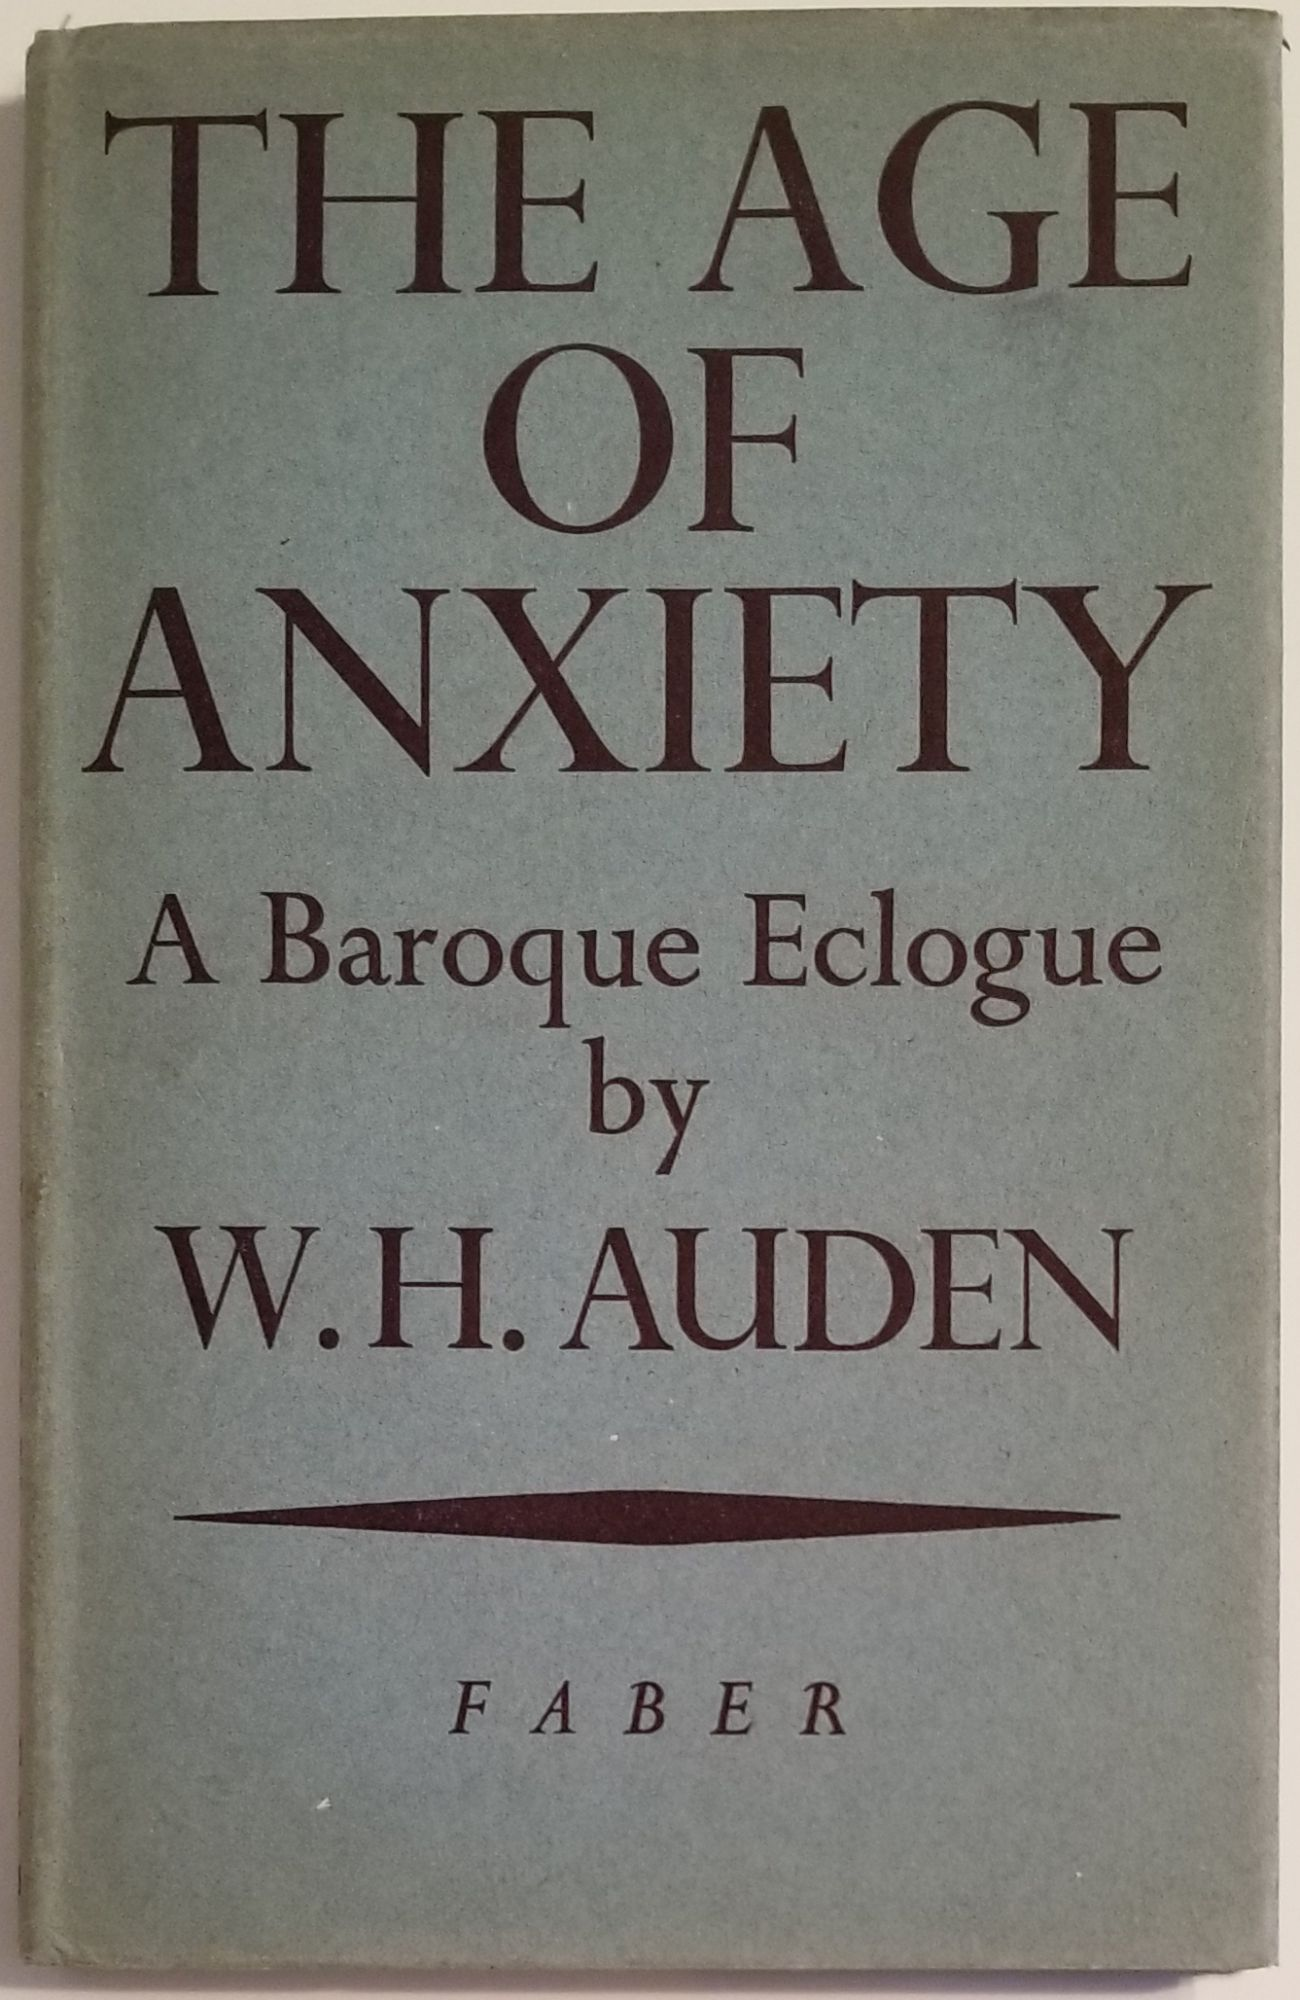 THE AGE OF ANXIETY. W. H. Auden.